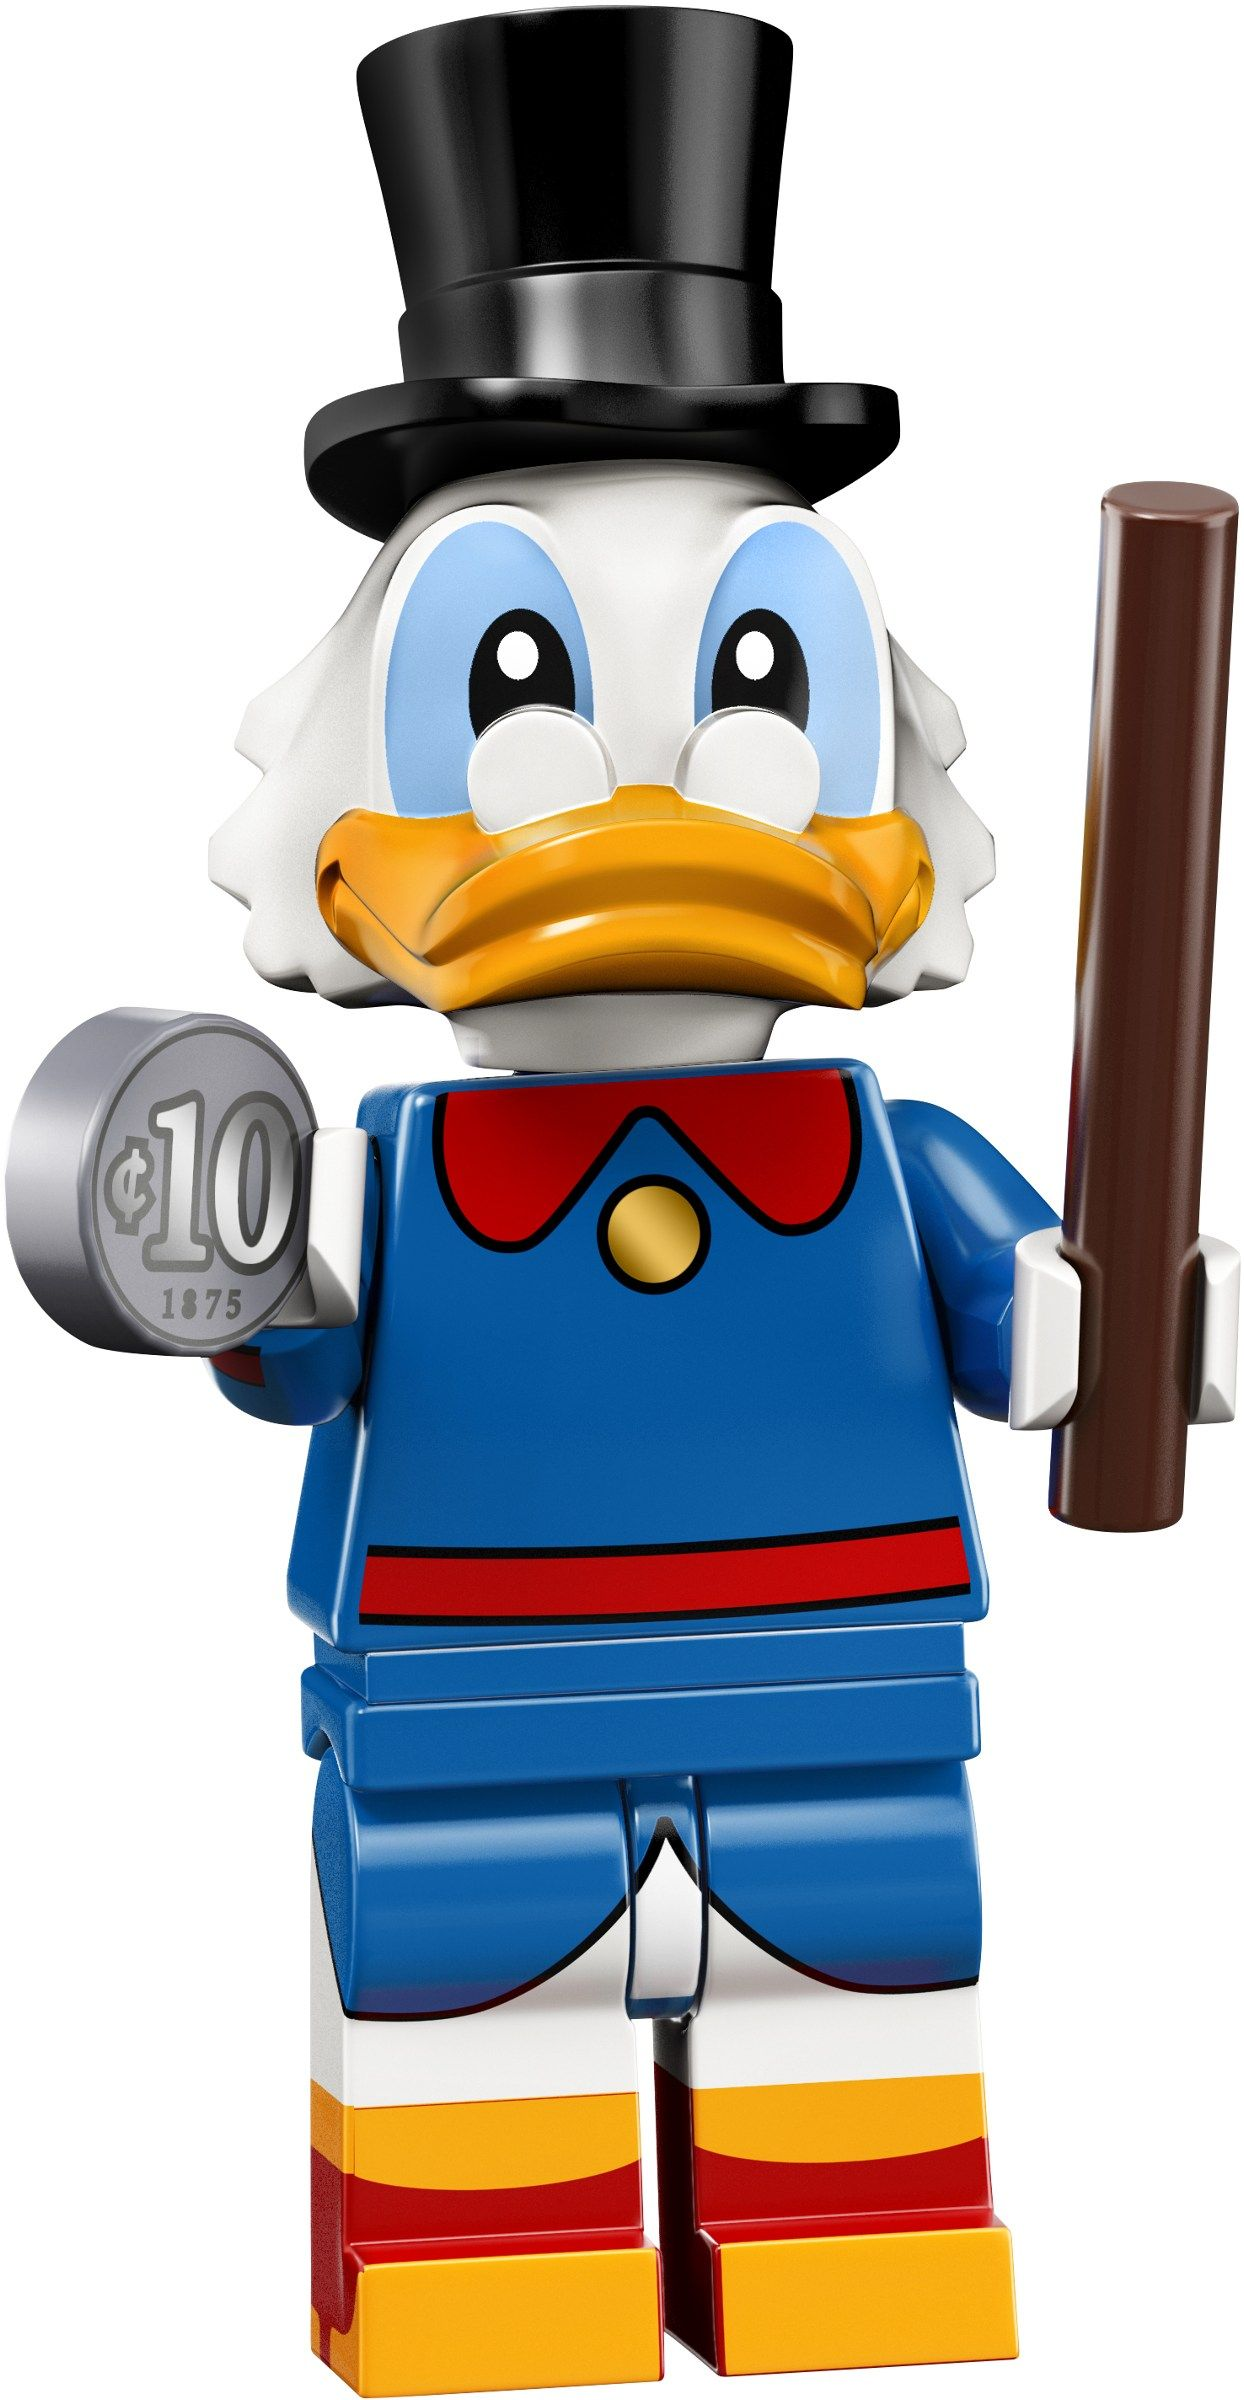 IN HAND Ready to Ship! LEGO Minifigures 71024 Disney Series 2